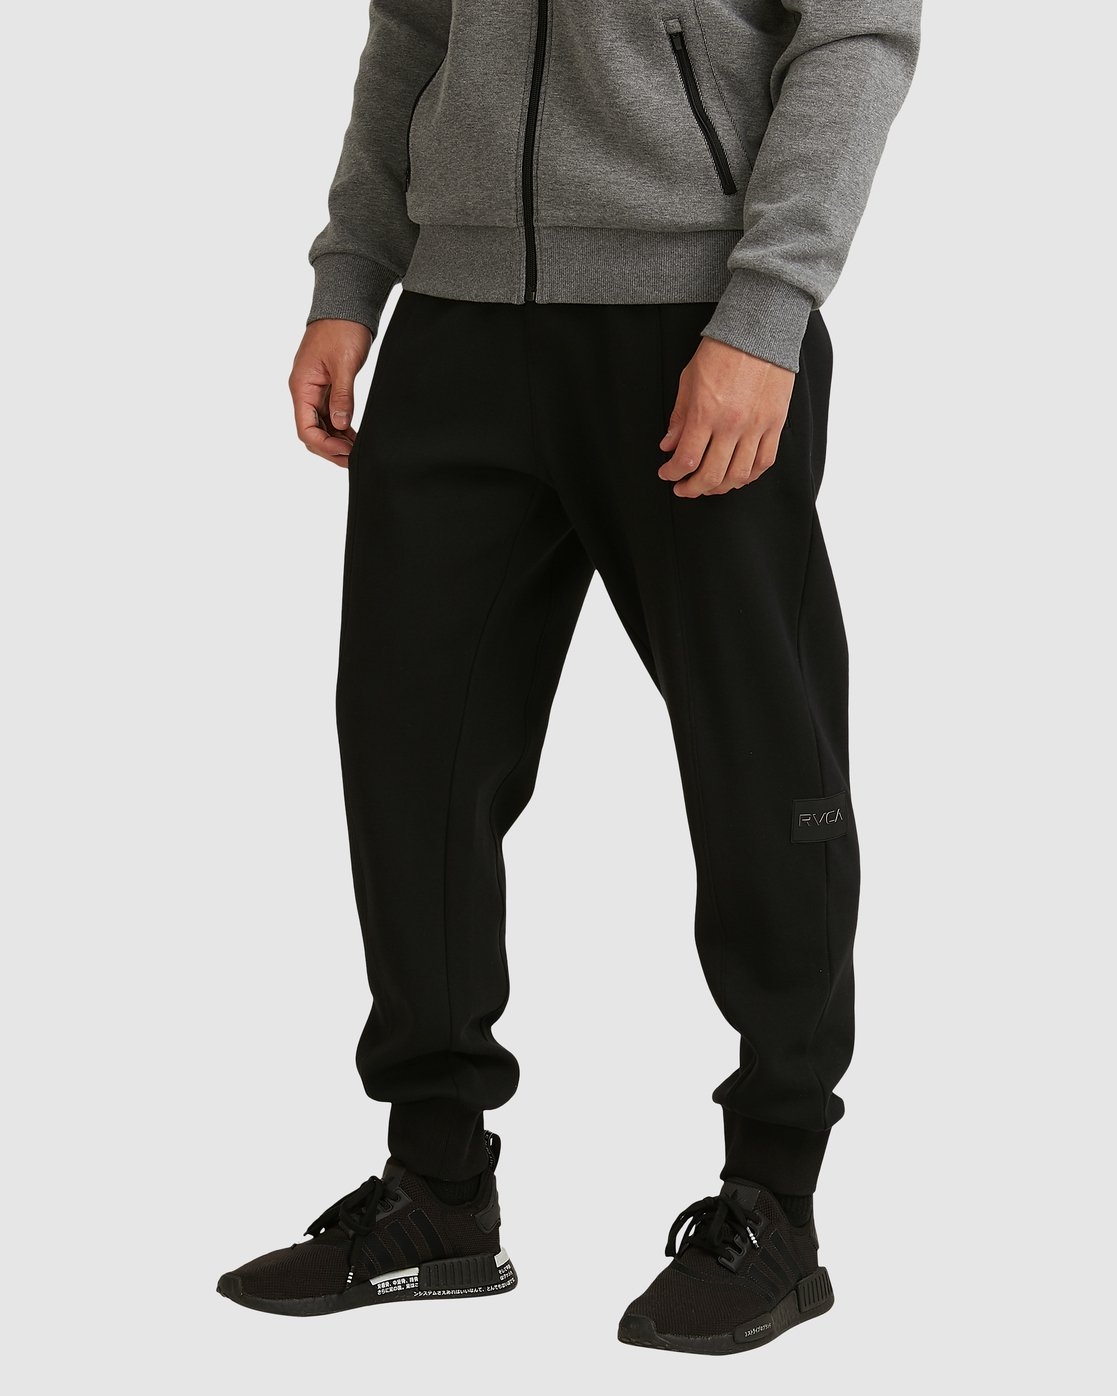 0 SPORT TECH SWEATPANT Black R305271 RVCA